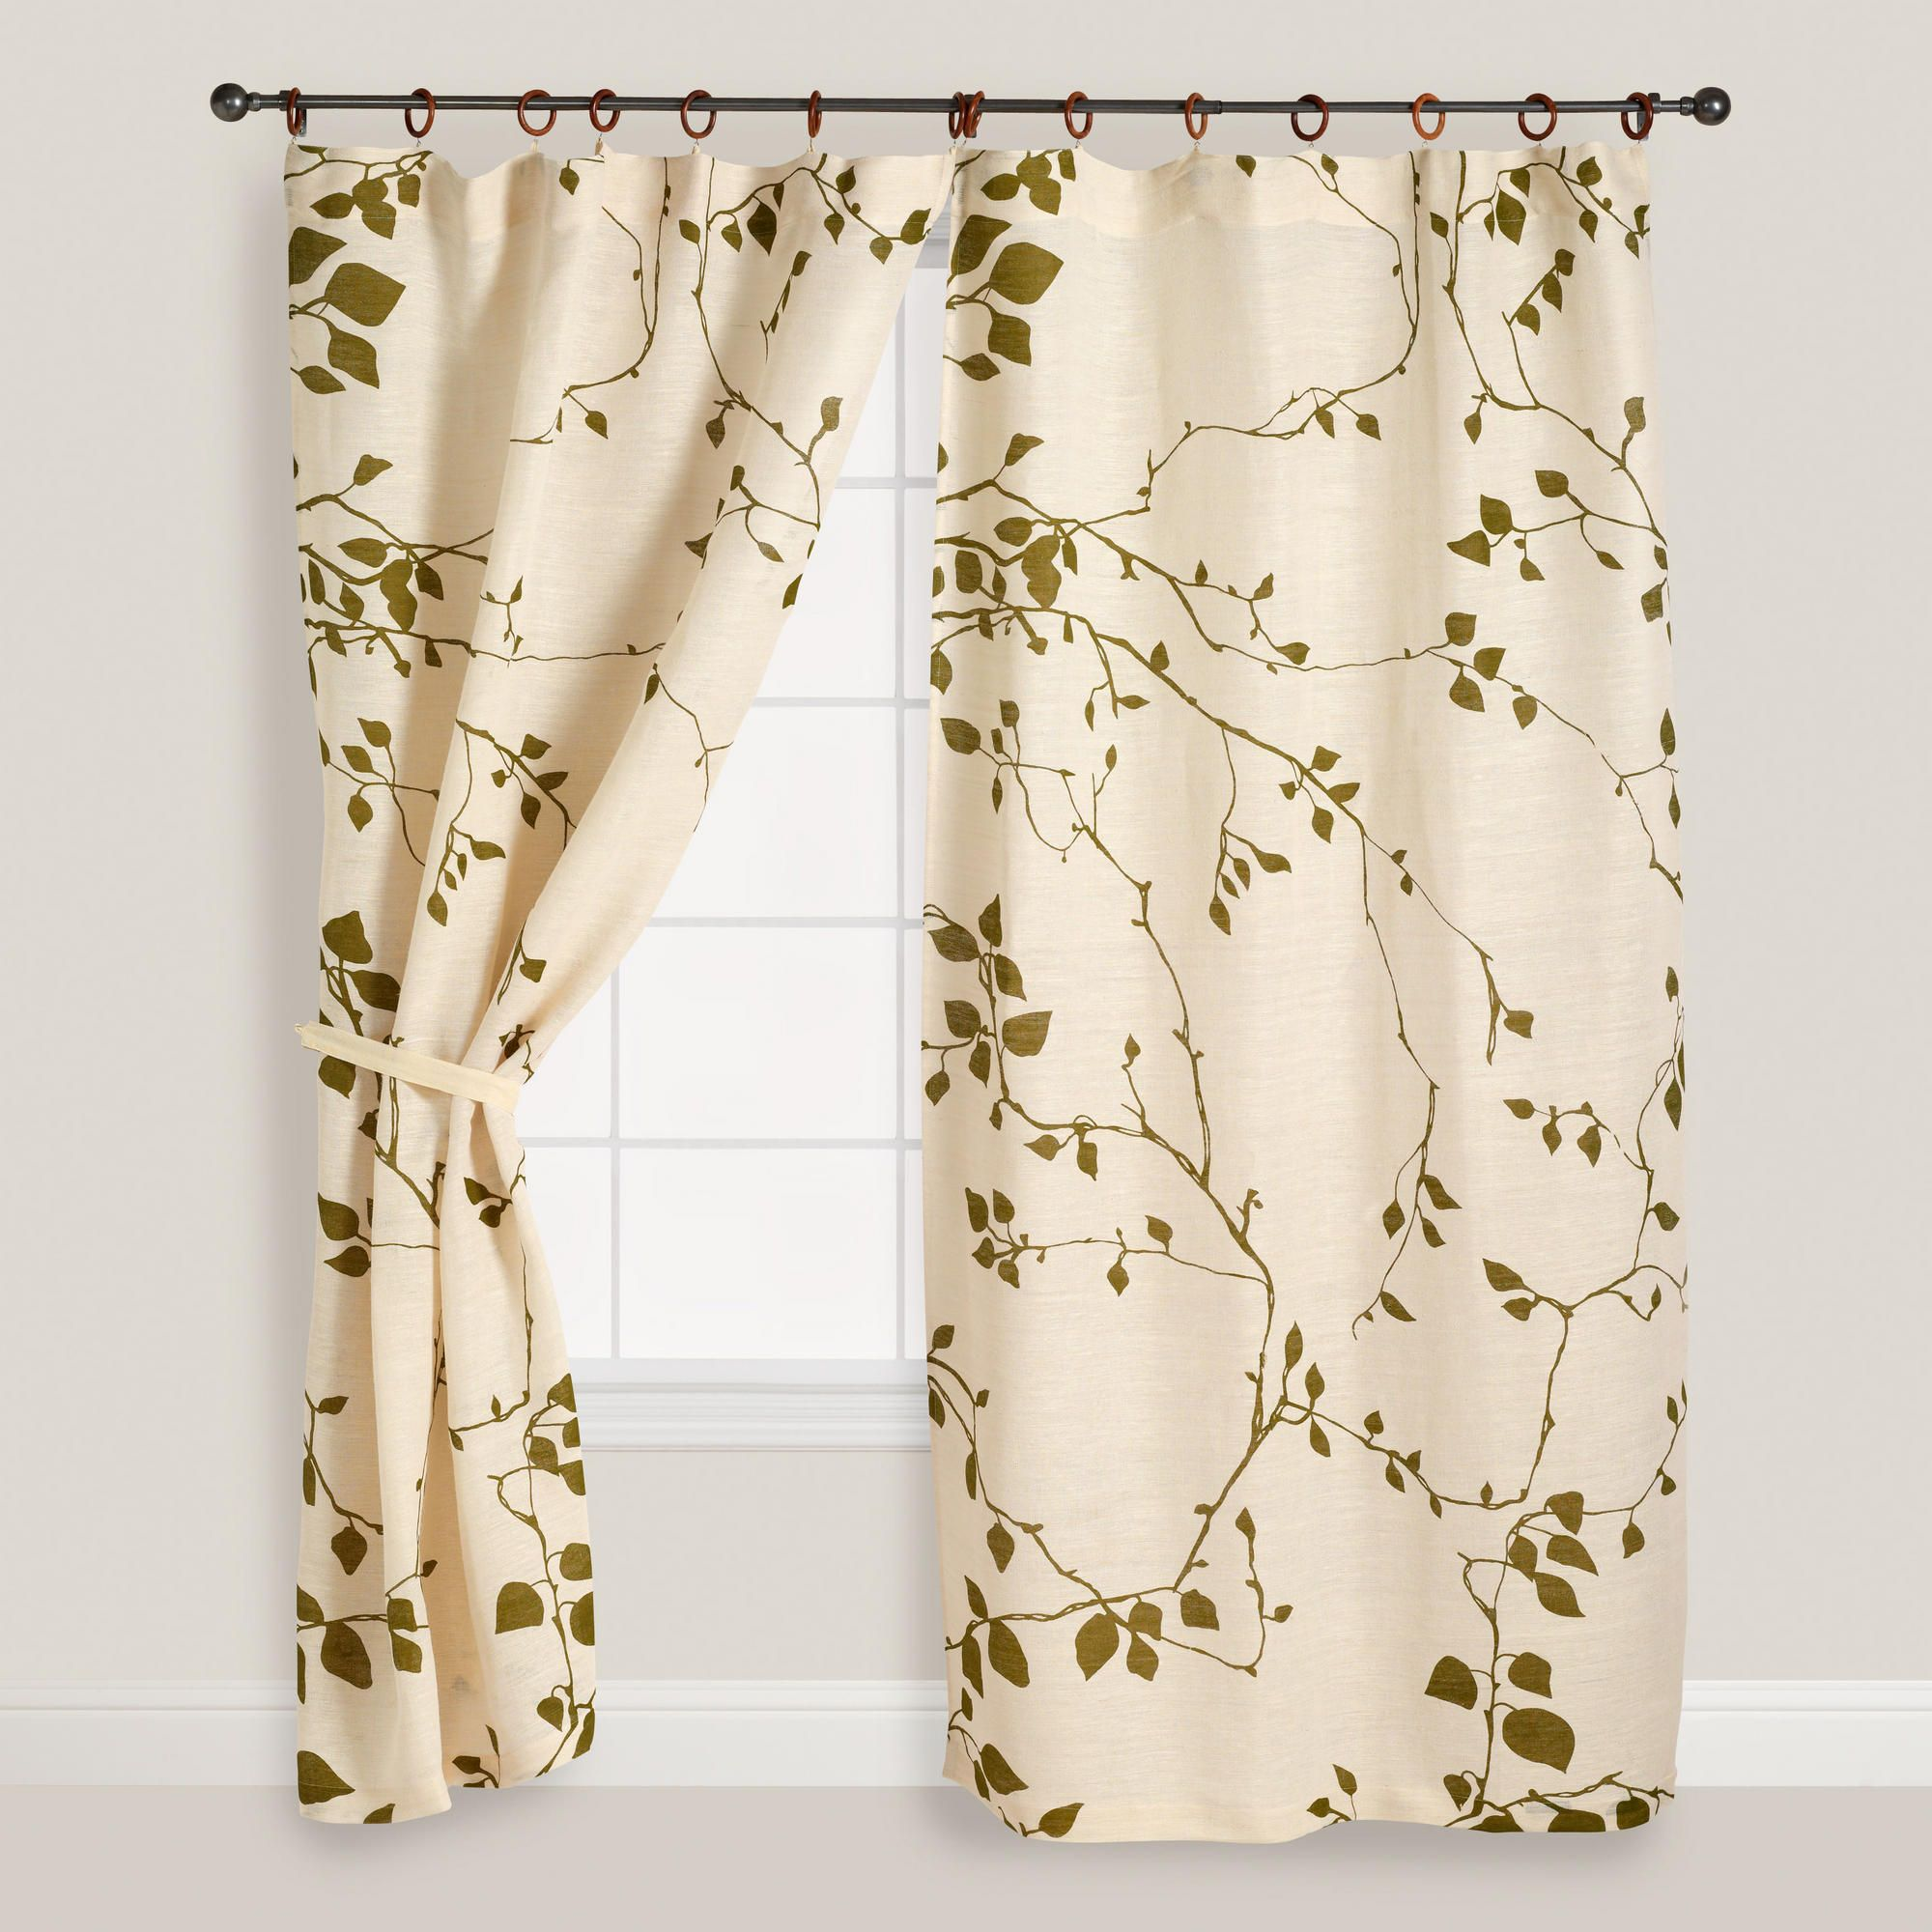 Office window coverings  lyrical branches window curtain  world market  office  pinterest